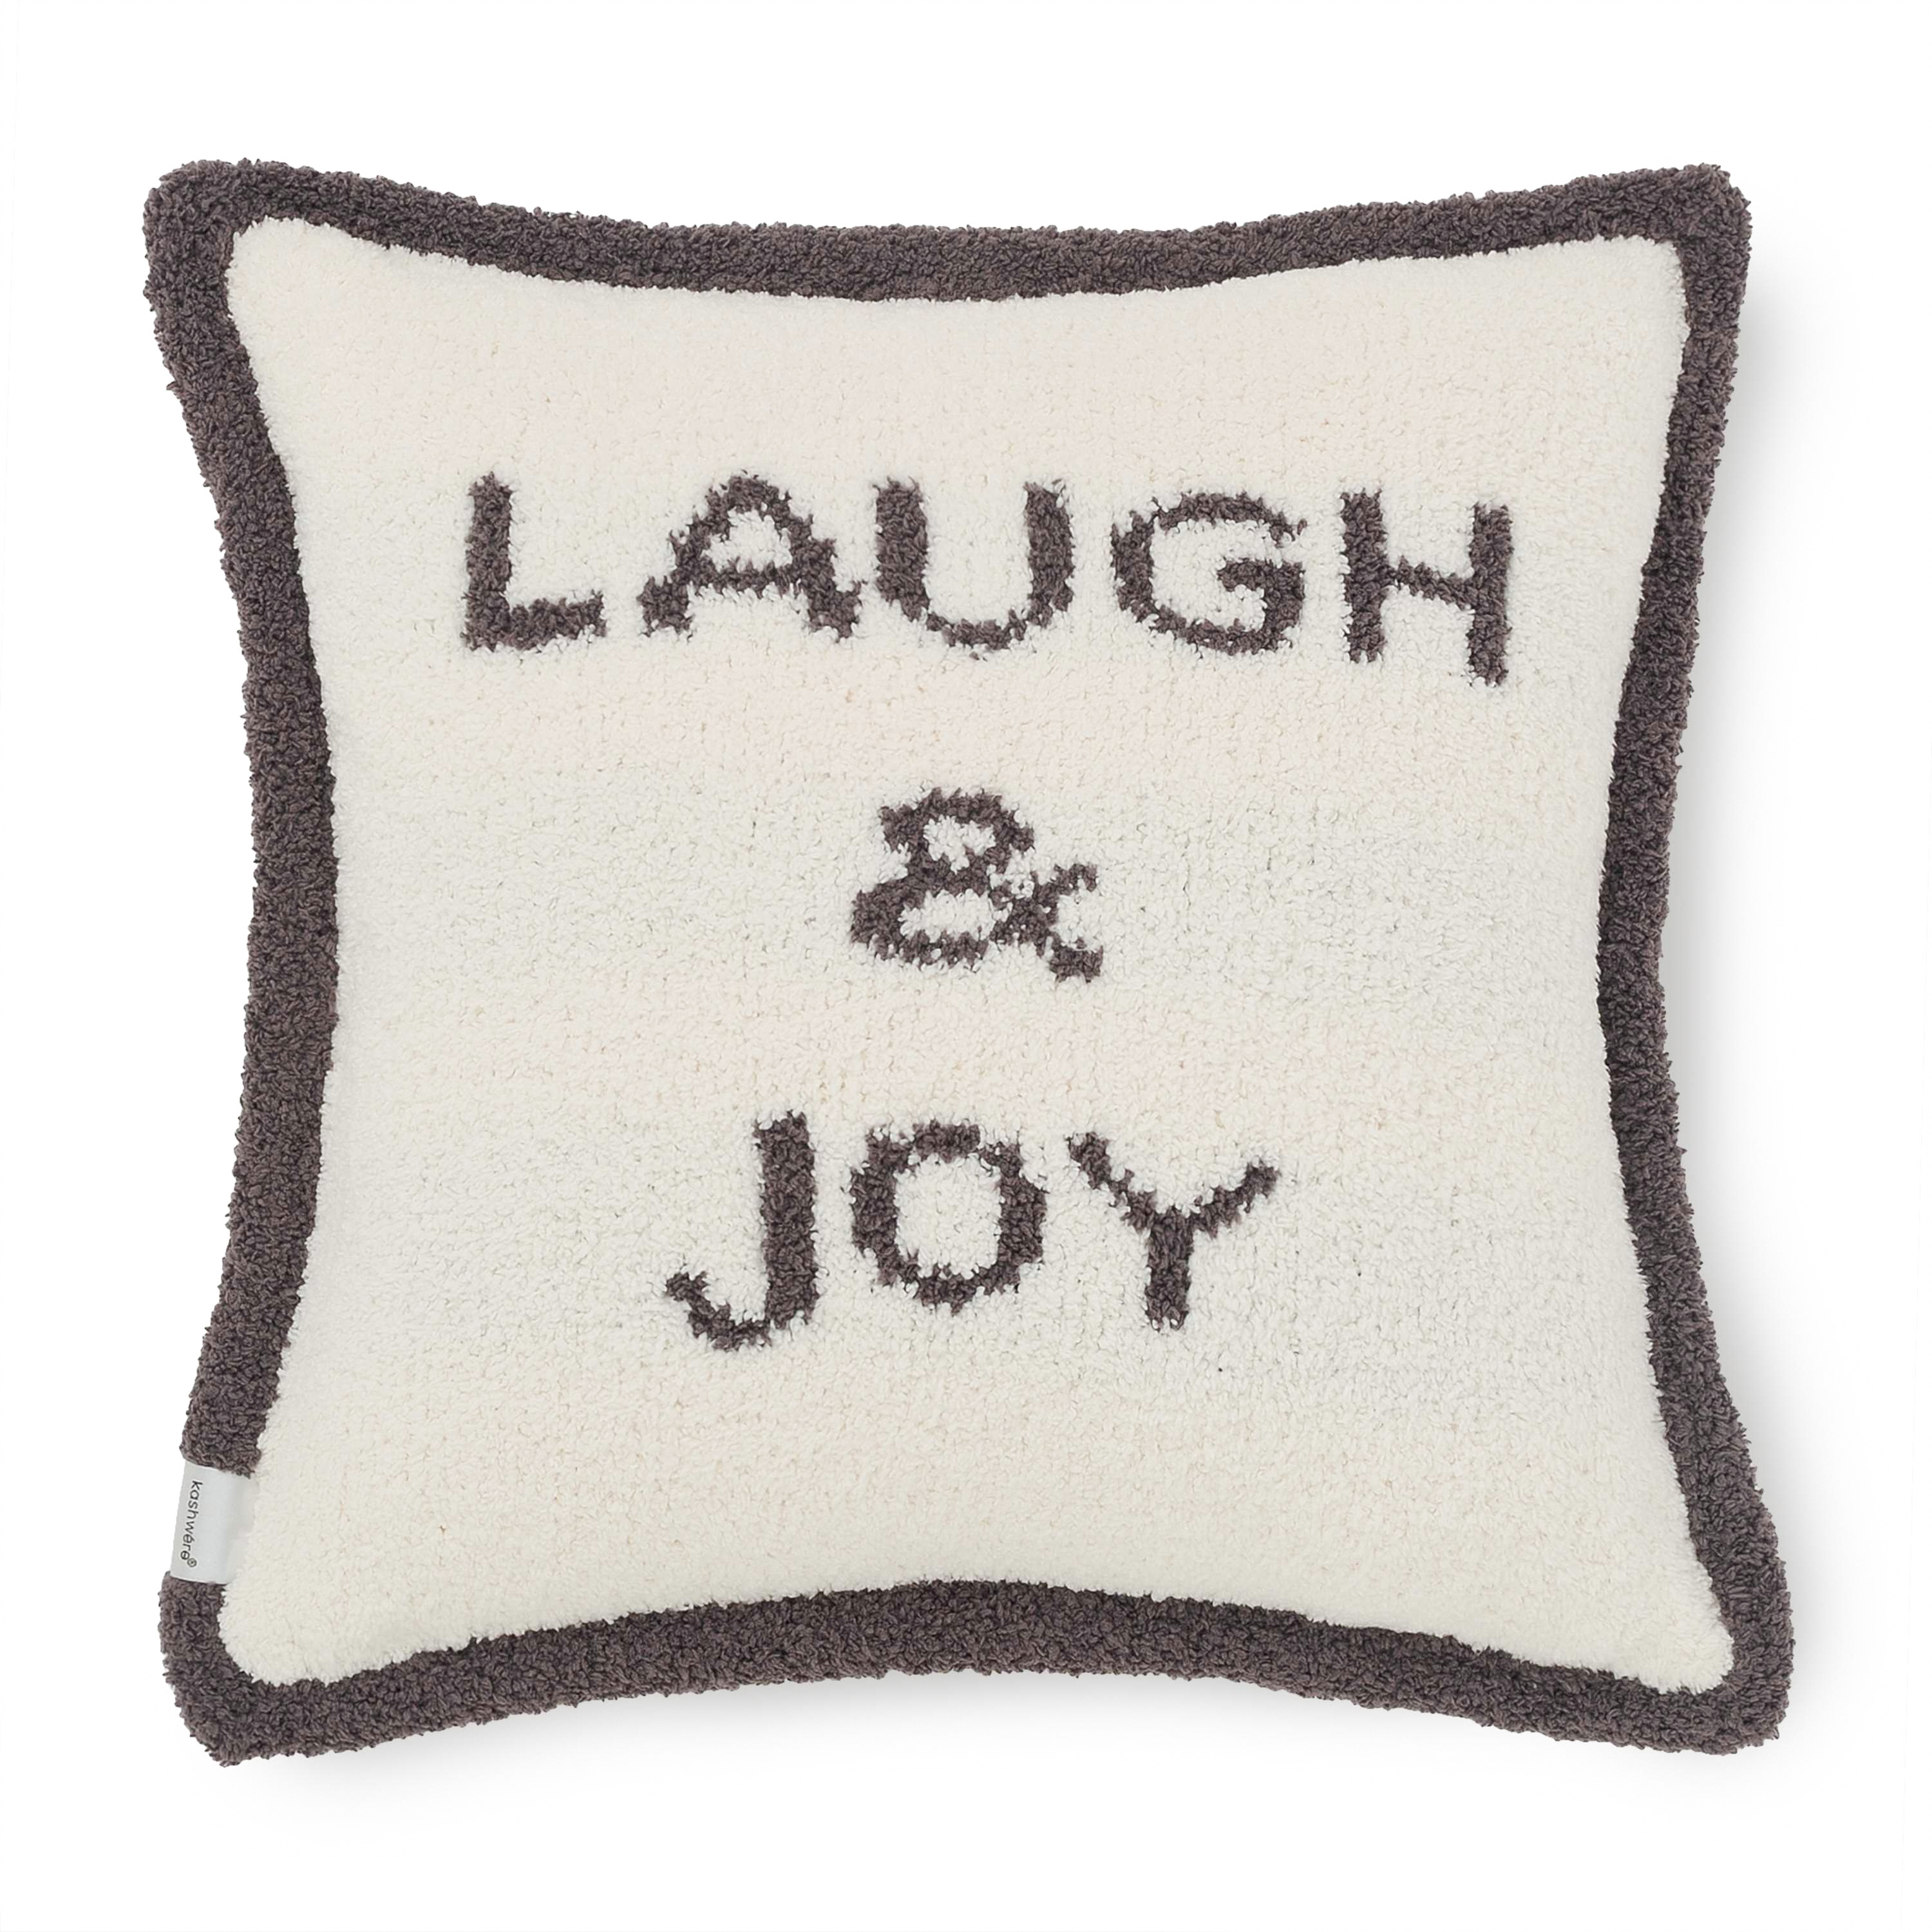 MESSAGE CUSHION COVER